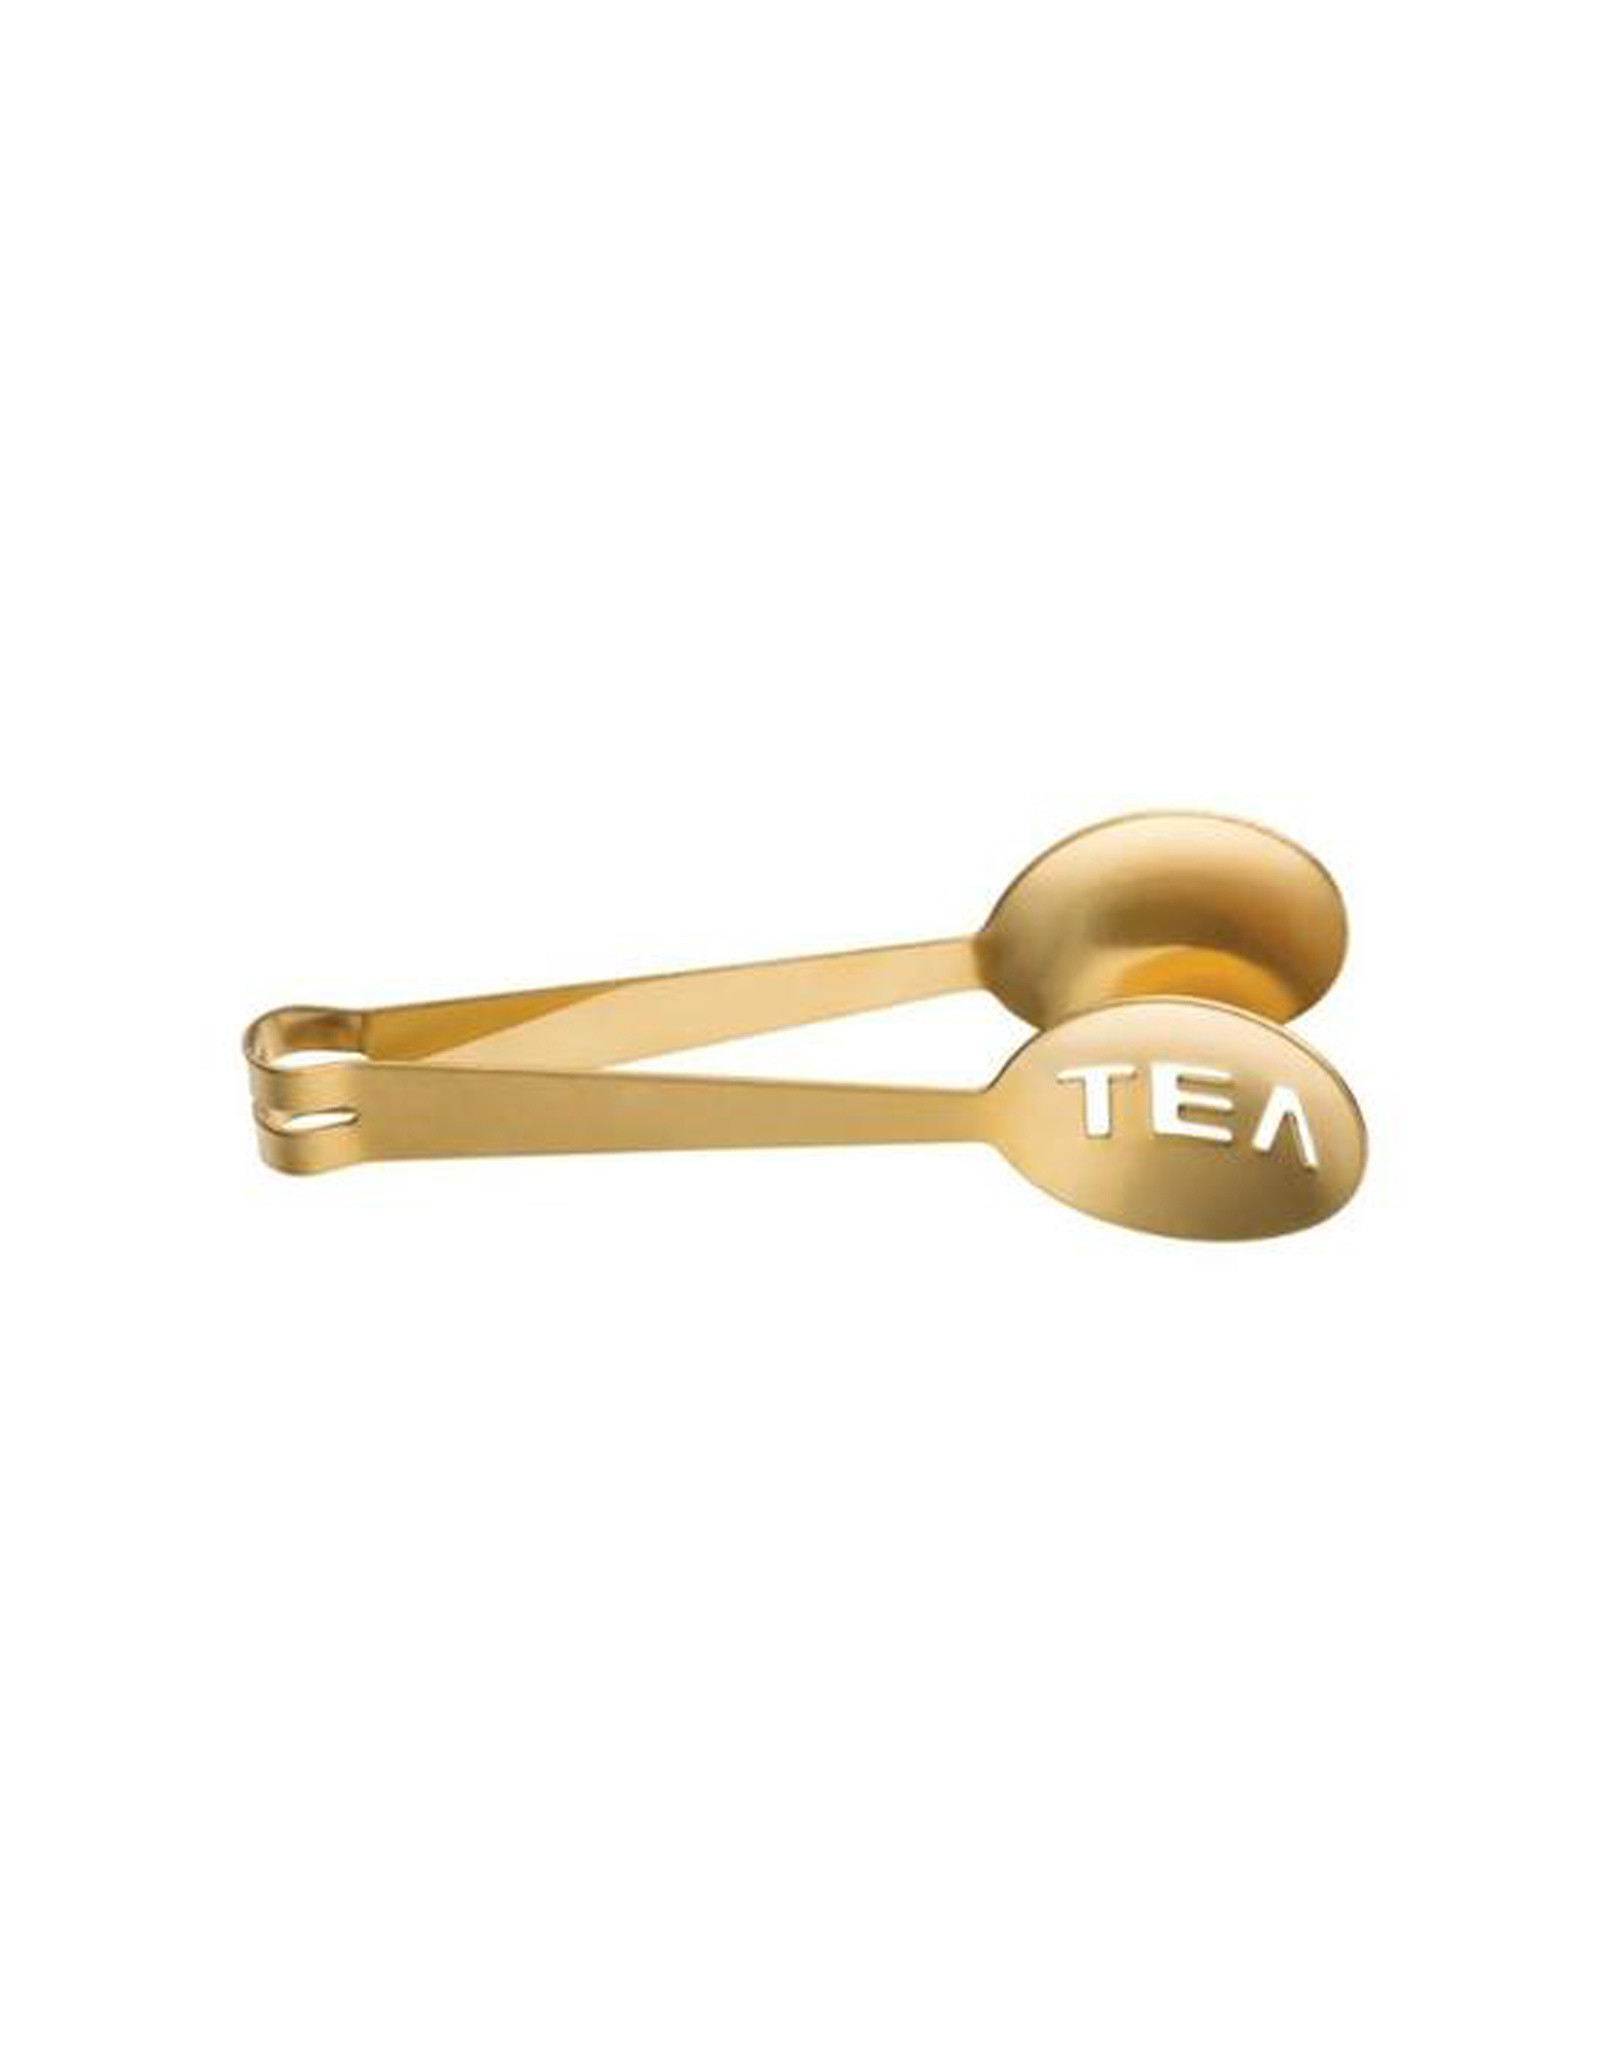 Gold Stainless Steel Tea Tongs